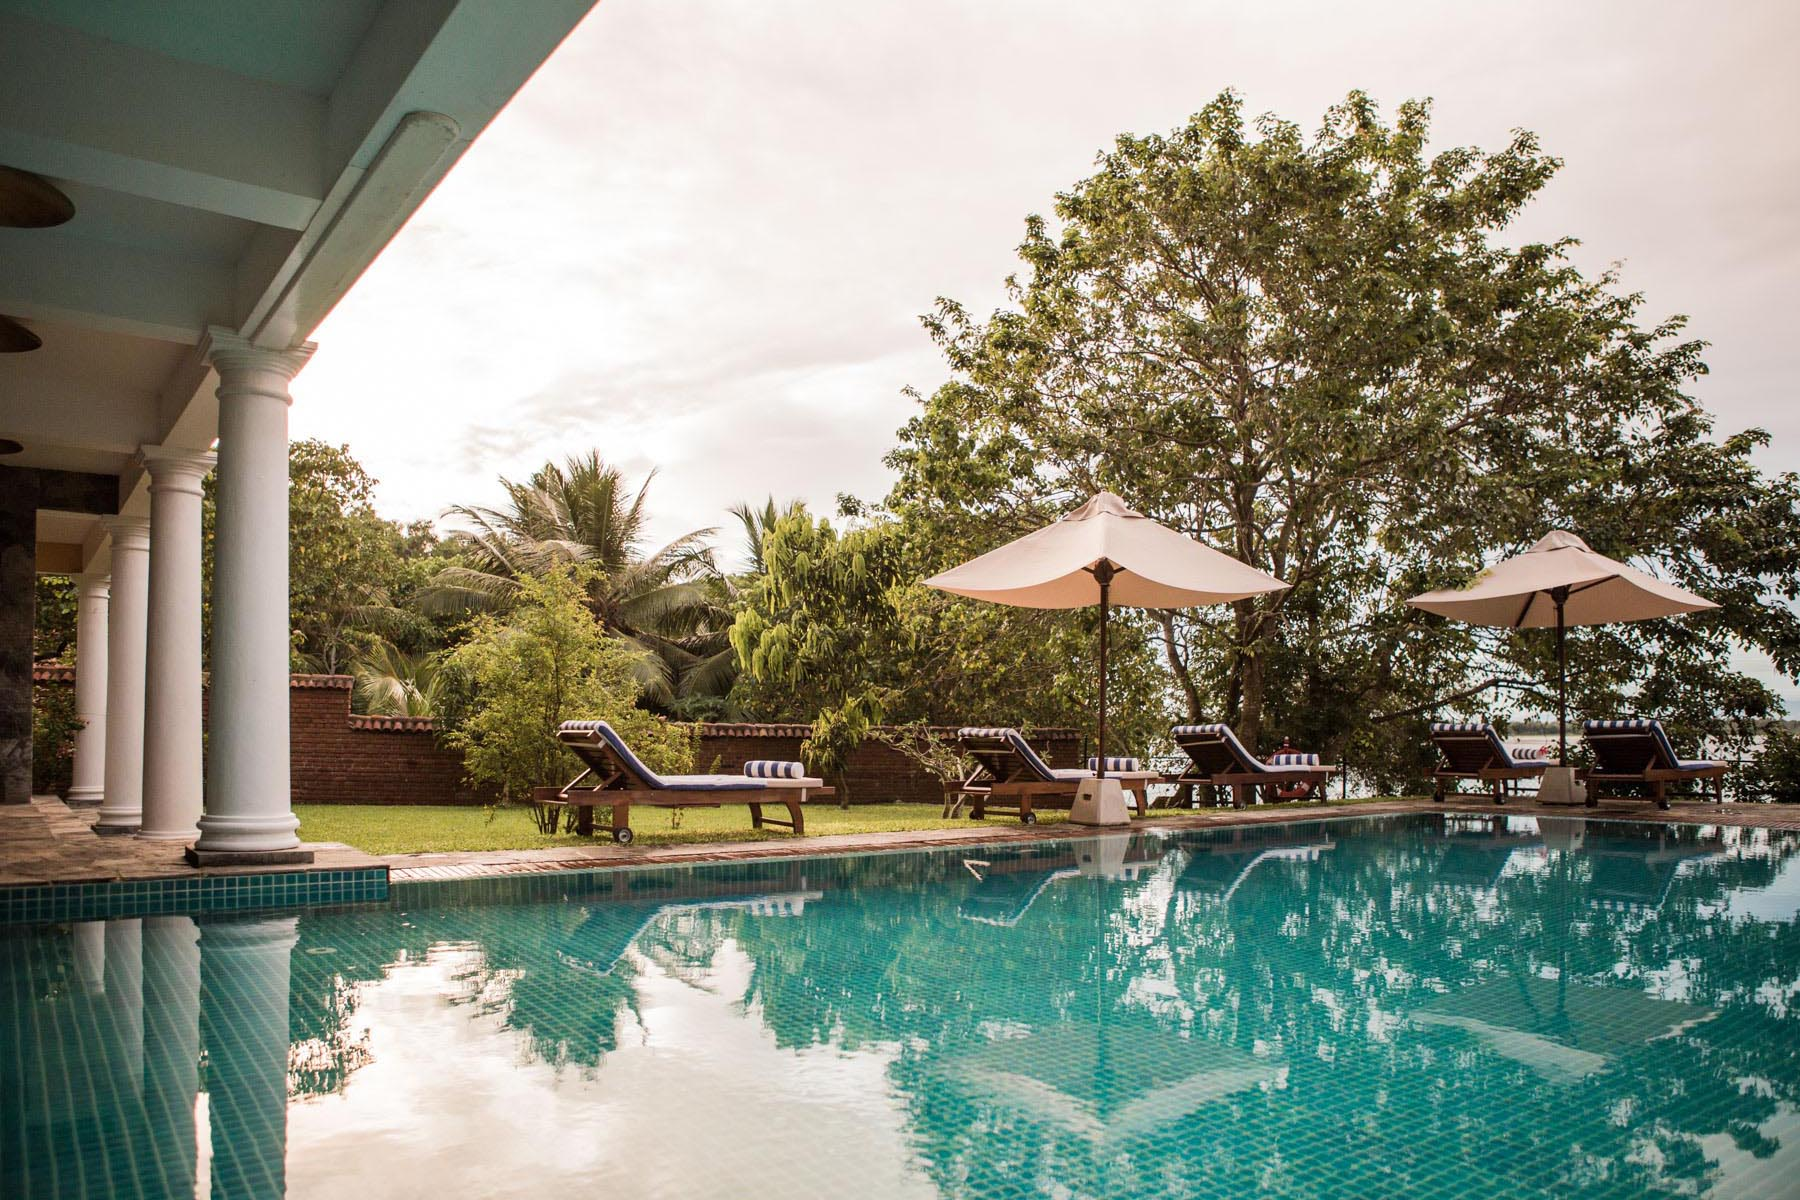 thaulle-resort-sri-lanka-the-pool1